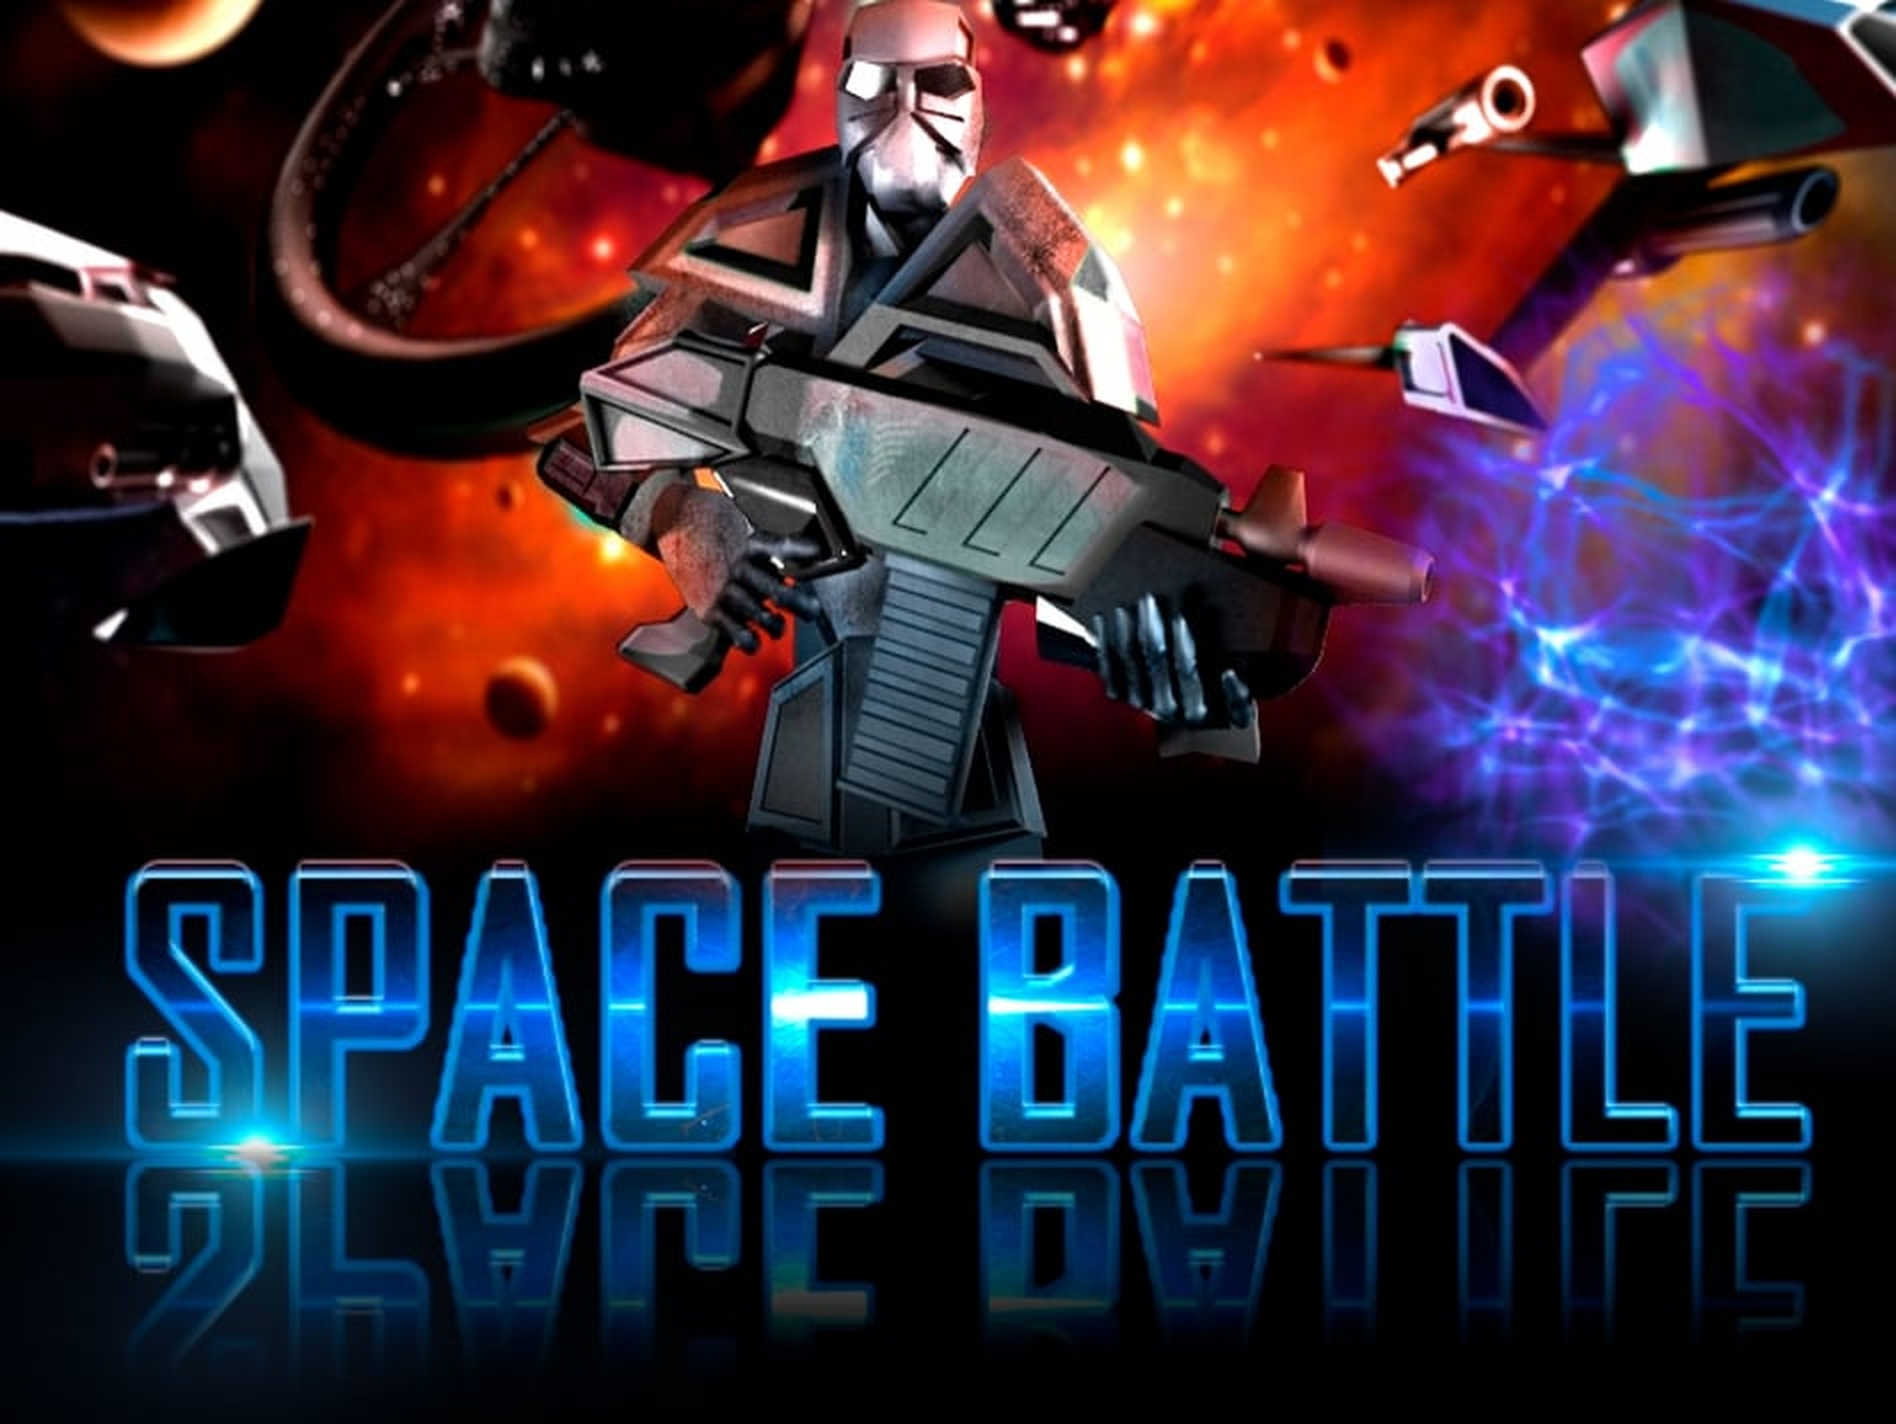 The Space Battle Online Slot Demo Game by Fugaso